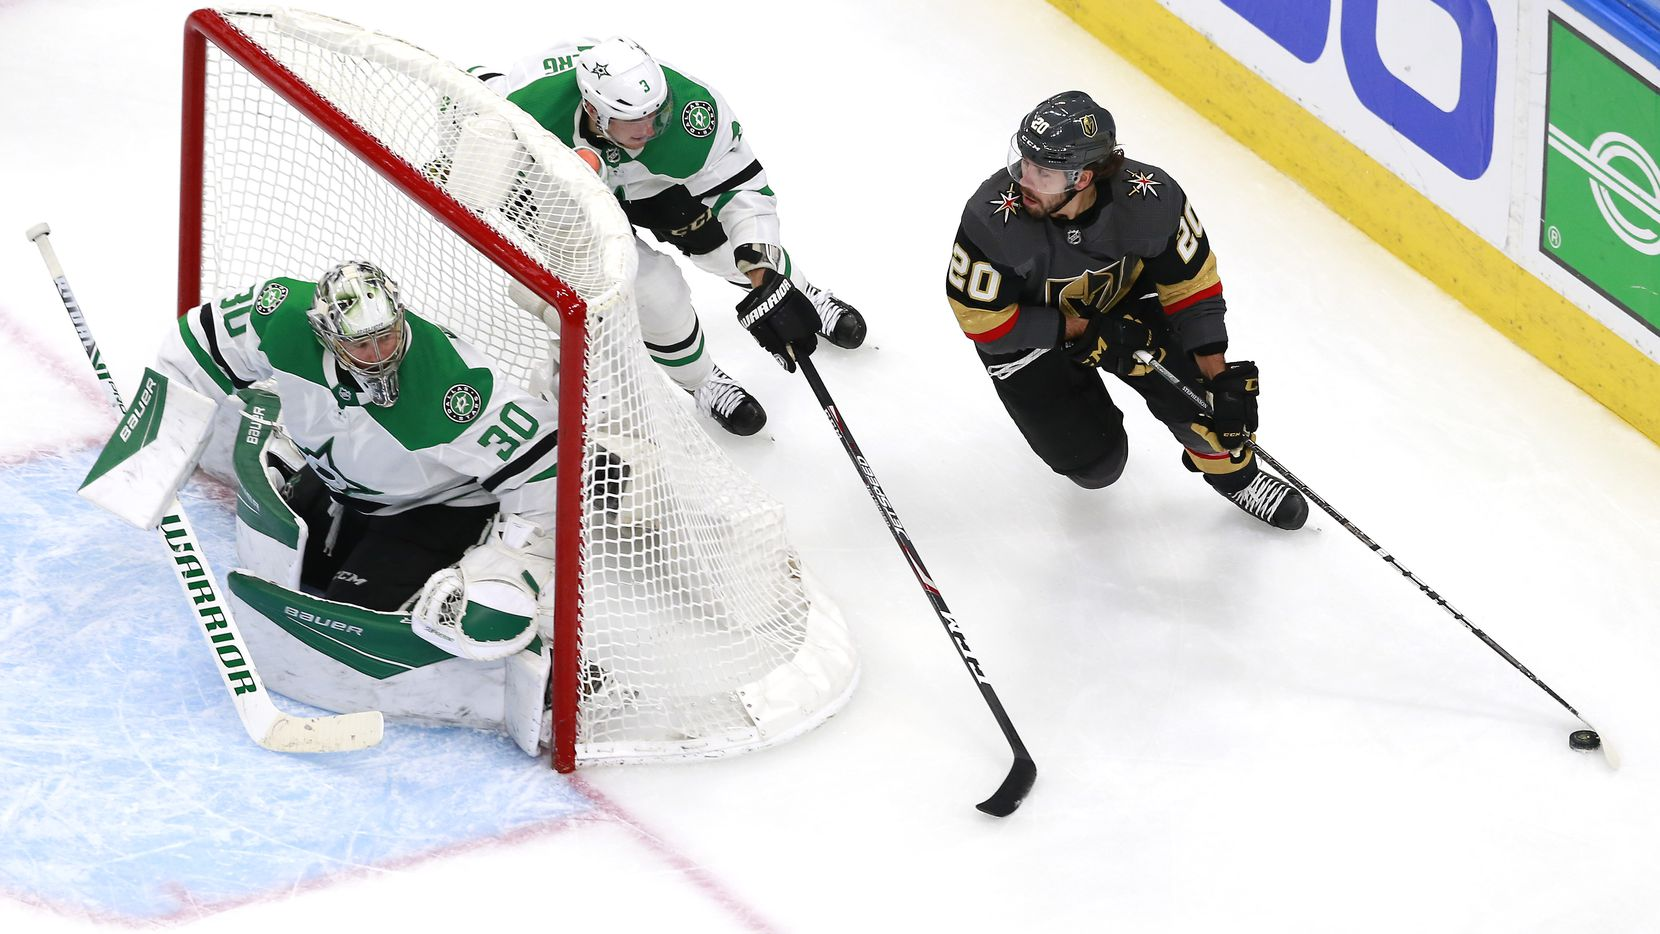 EDMONTON, ALBERTA - AUGUST 03:  Chandler Stephenson #20 of the Vegas Golden Knights wraps around the net as John Klingberg #3 and Ben Bishop #30 of the Dallas Stars defend in the third period in a Western Conference Round Robin game during the 2020 NHL Stanley Cup Playoff at Rogers Place on August 03, 2020 in Edmonton, Alberta.